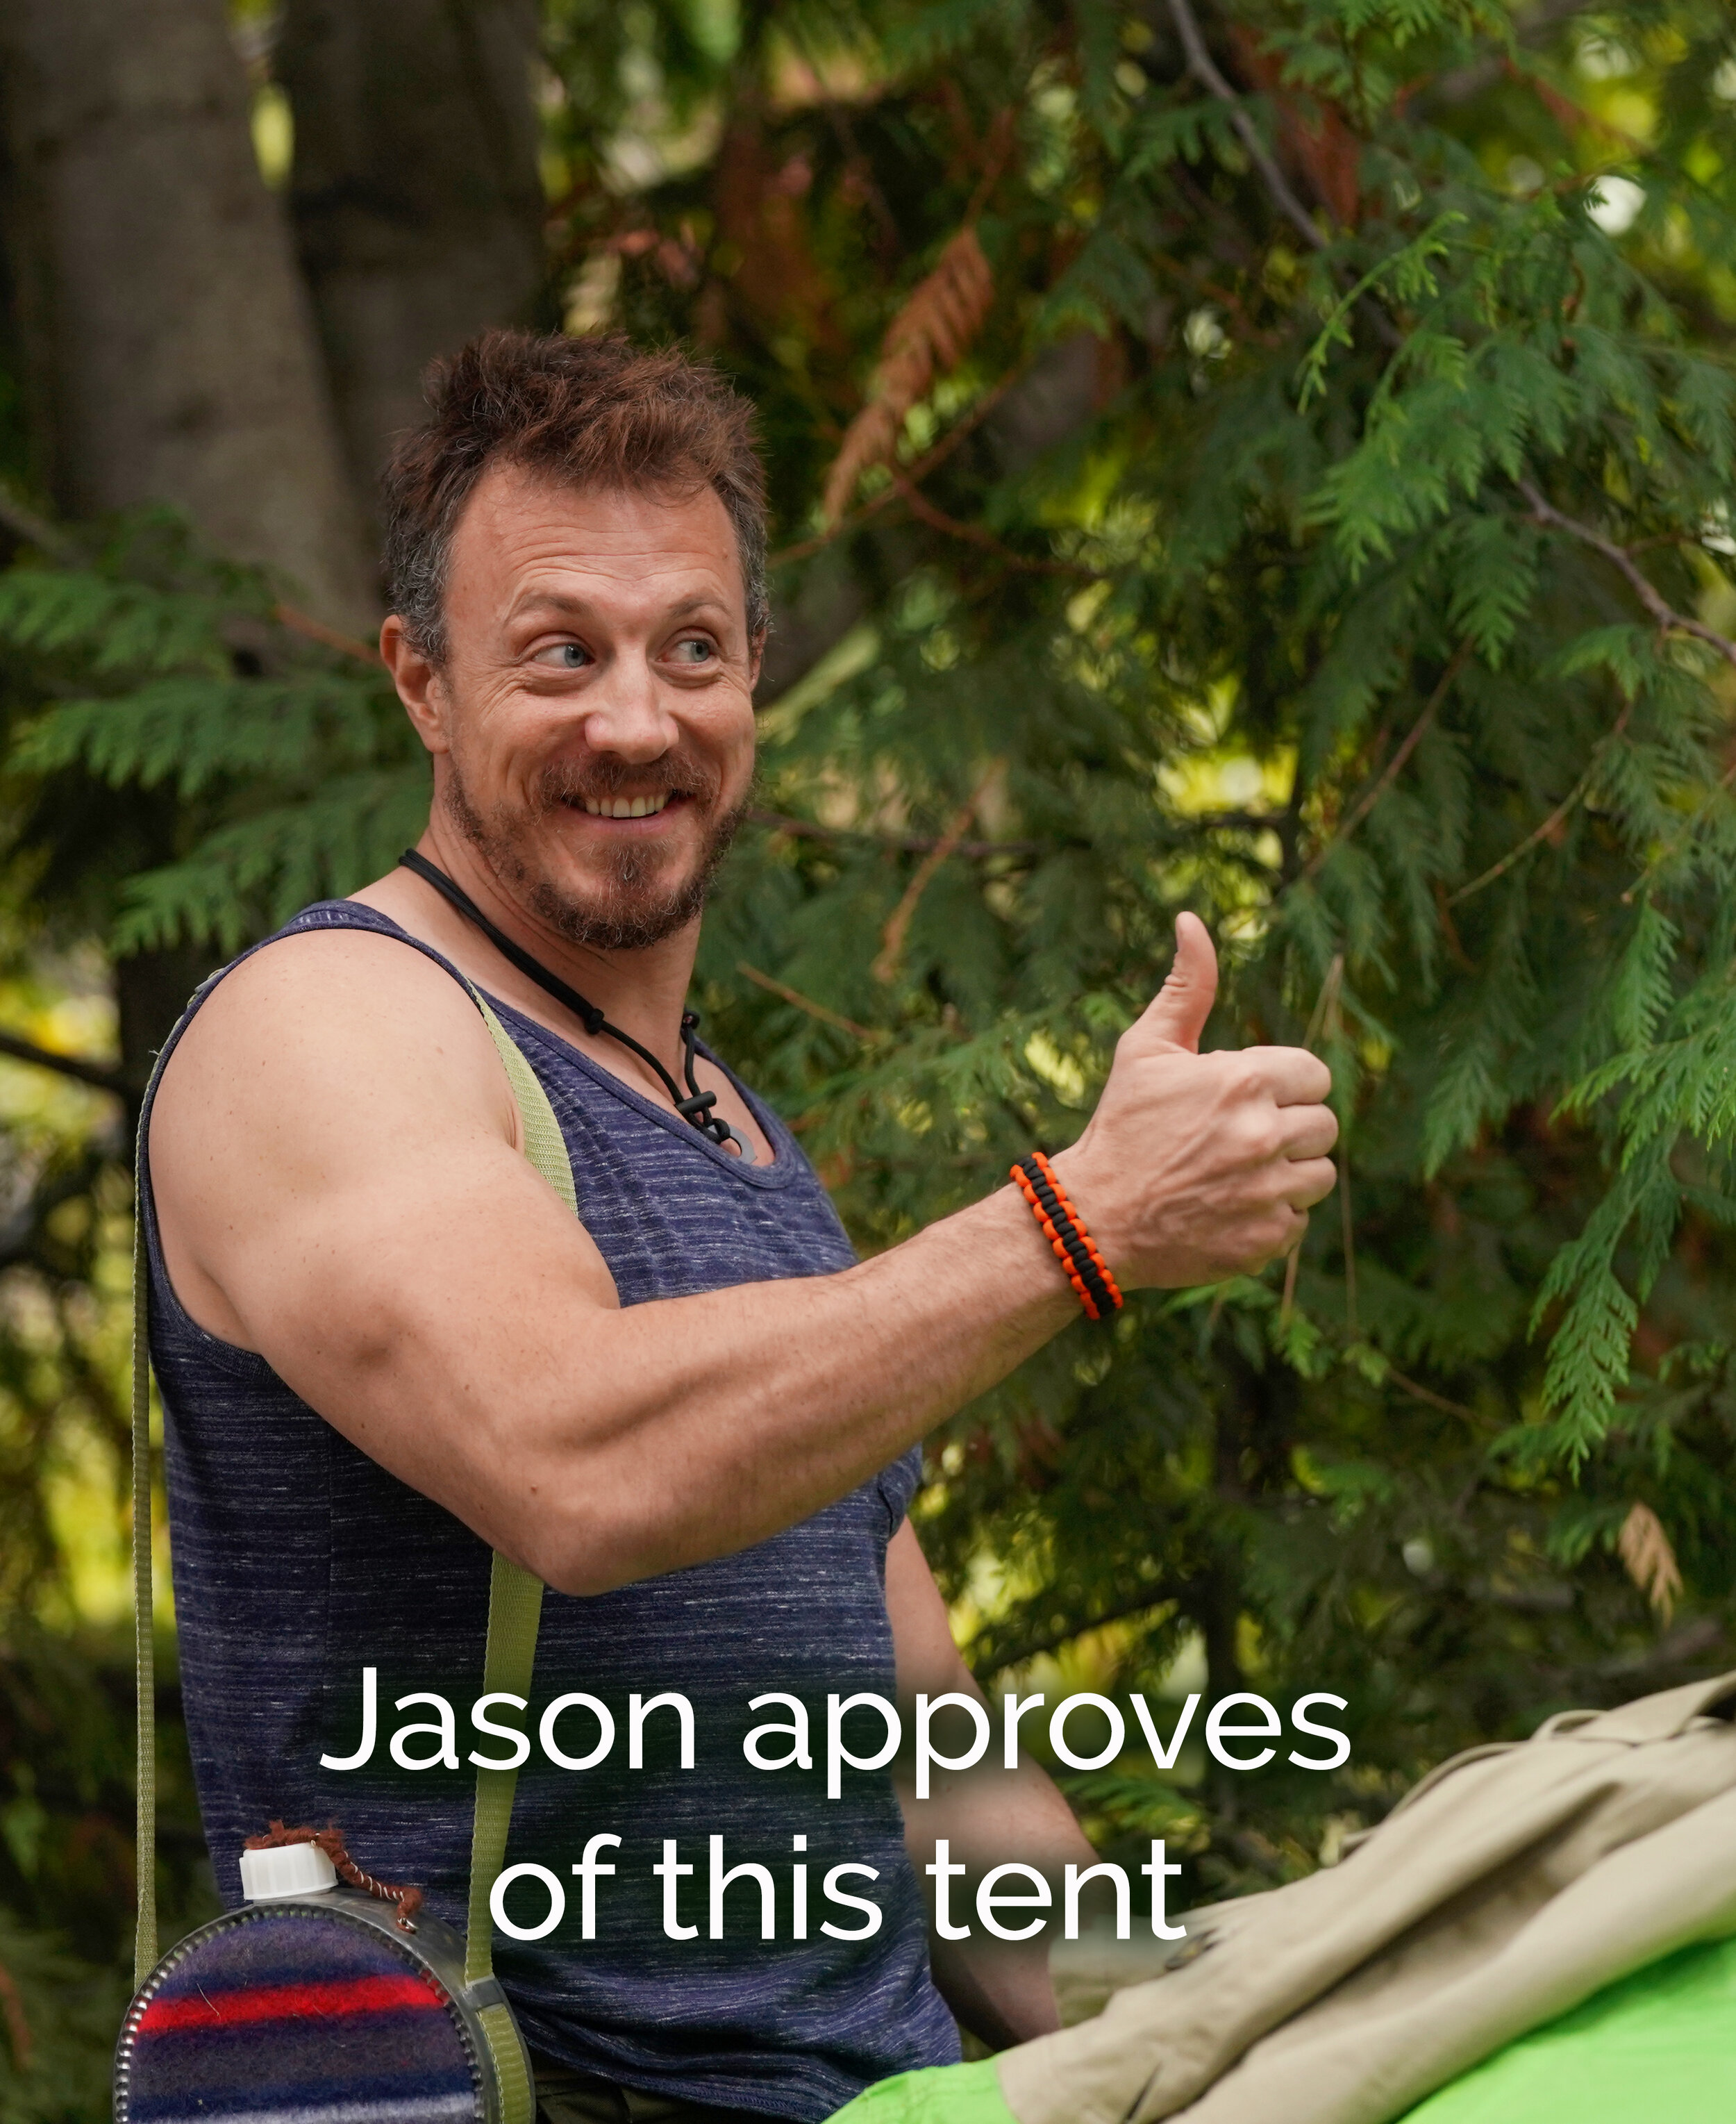 Jason approves of this tent.jpg